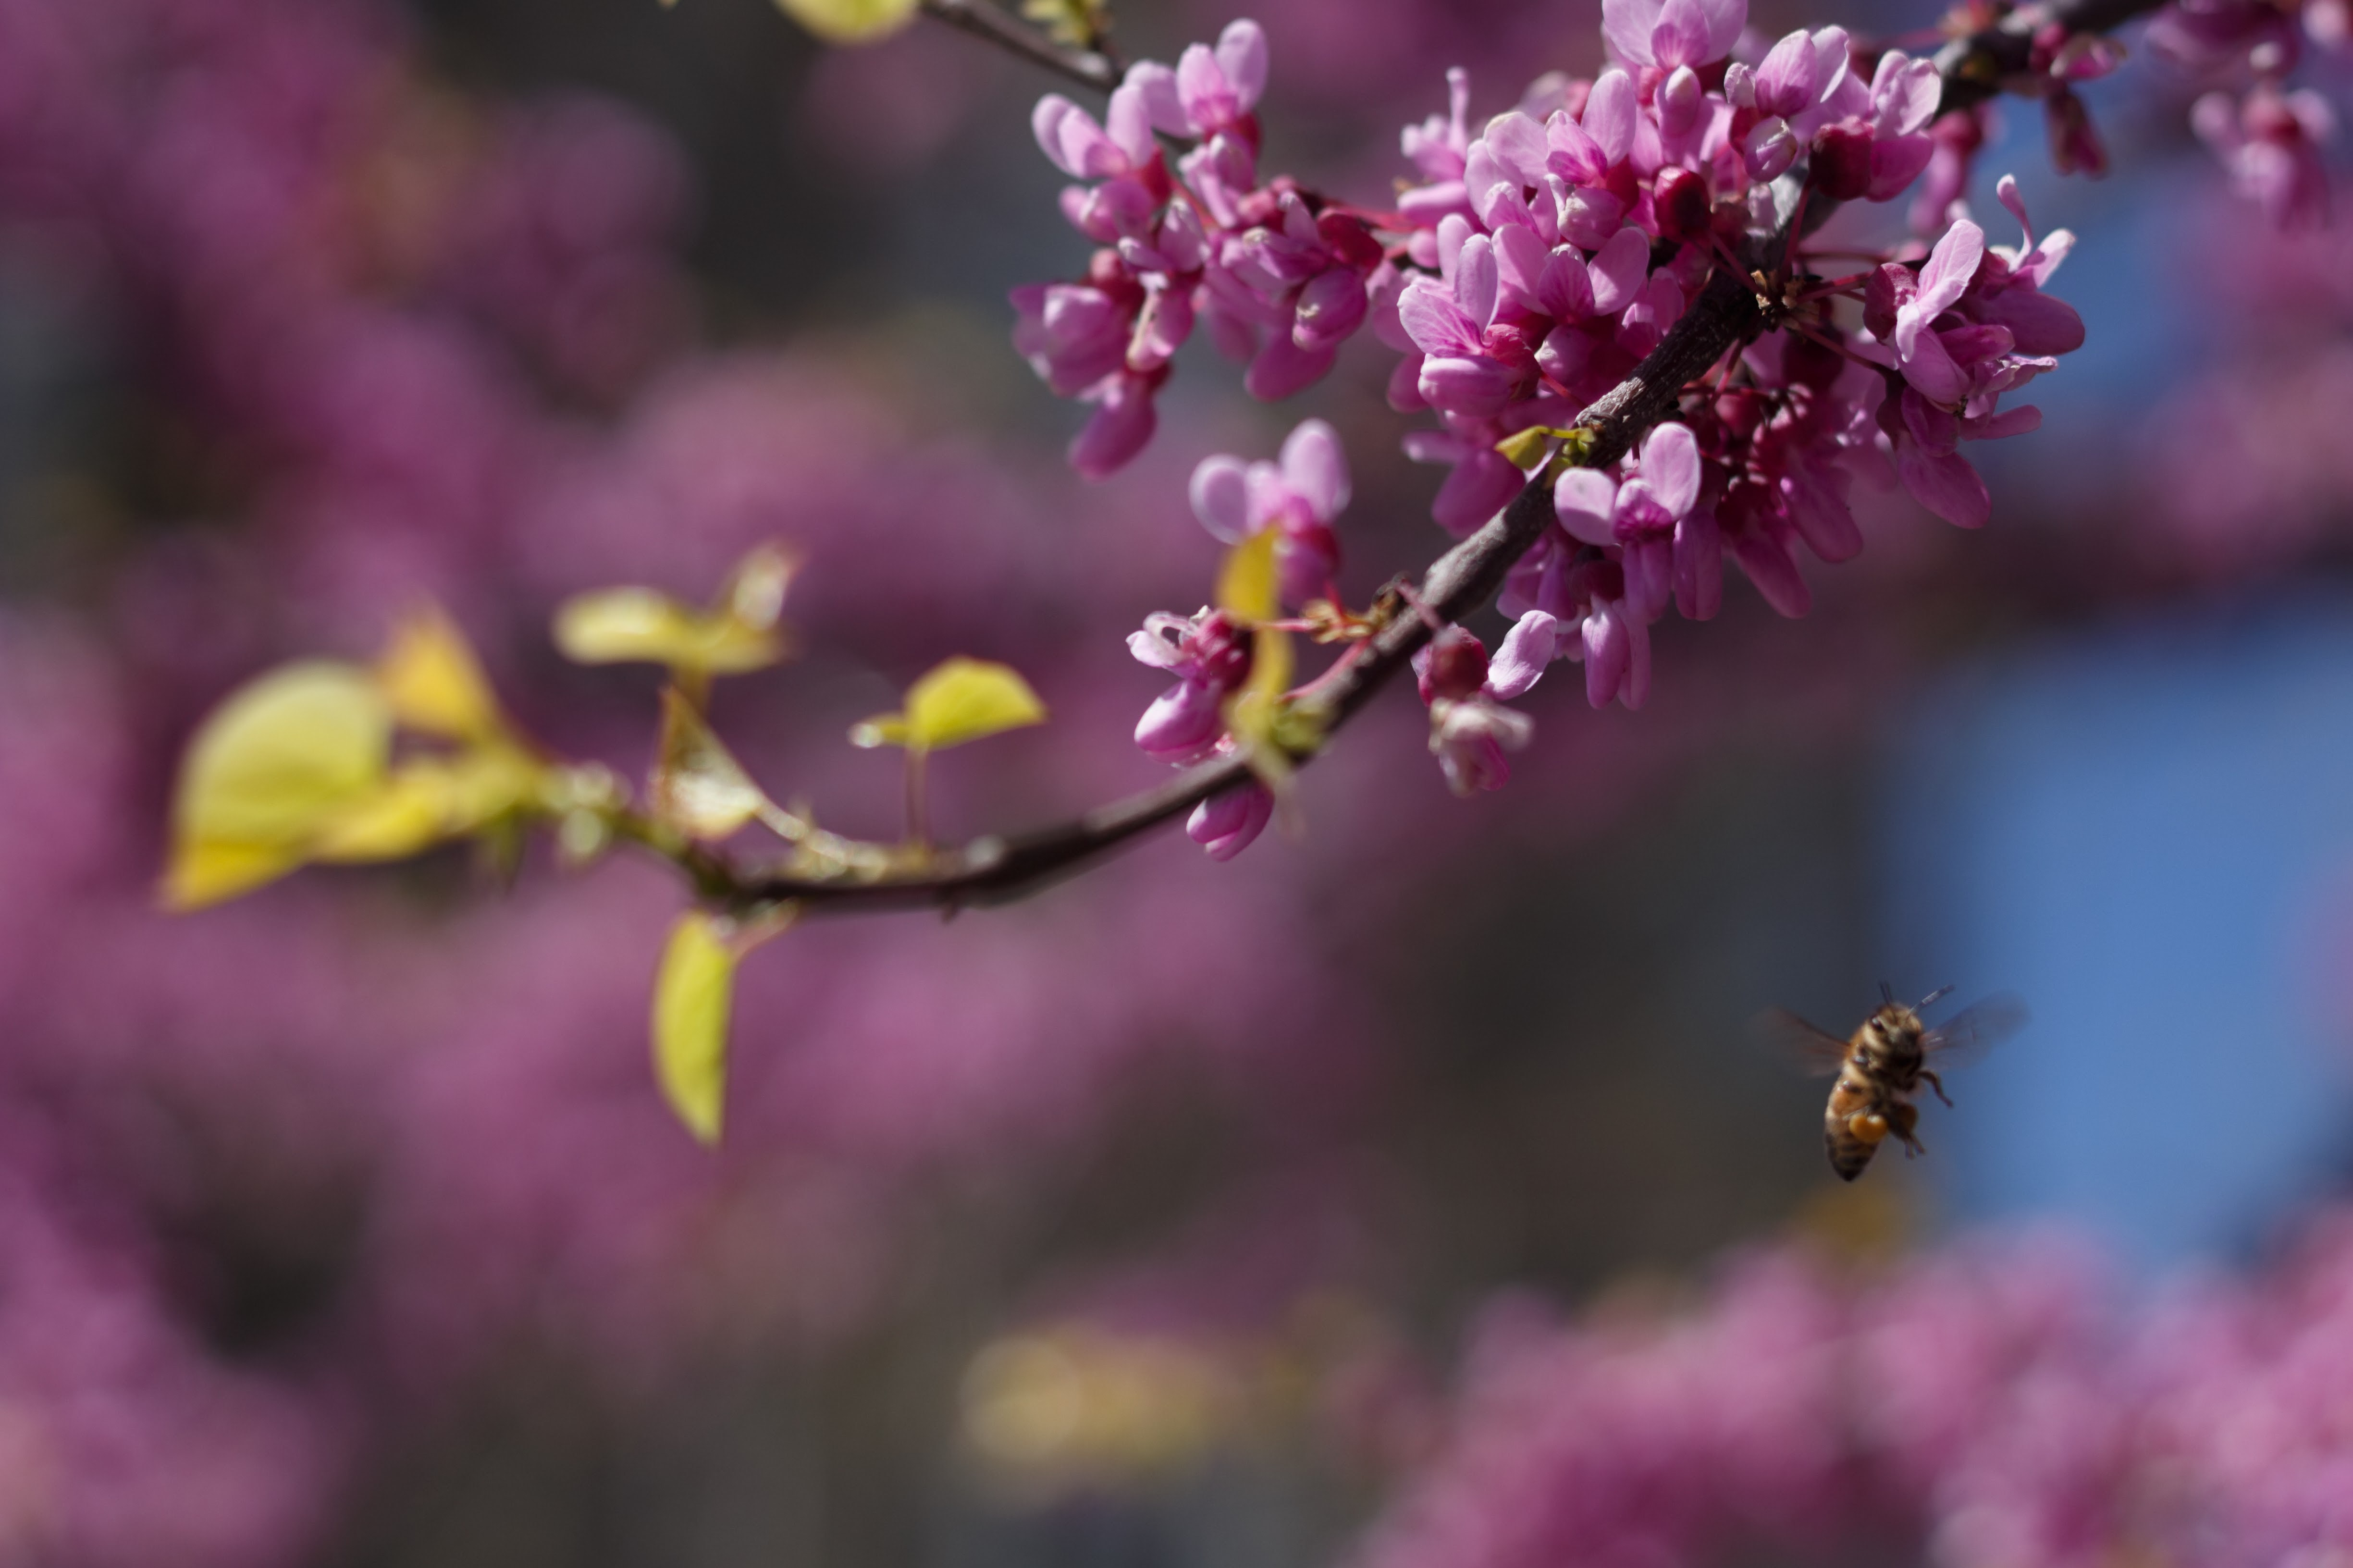 brown bee near cherry blossom plant selective focus photo